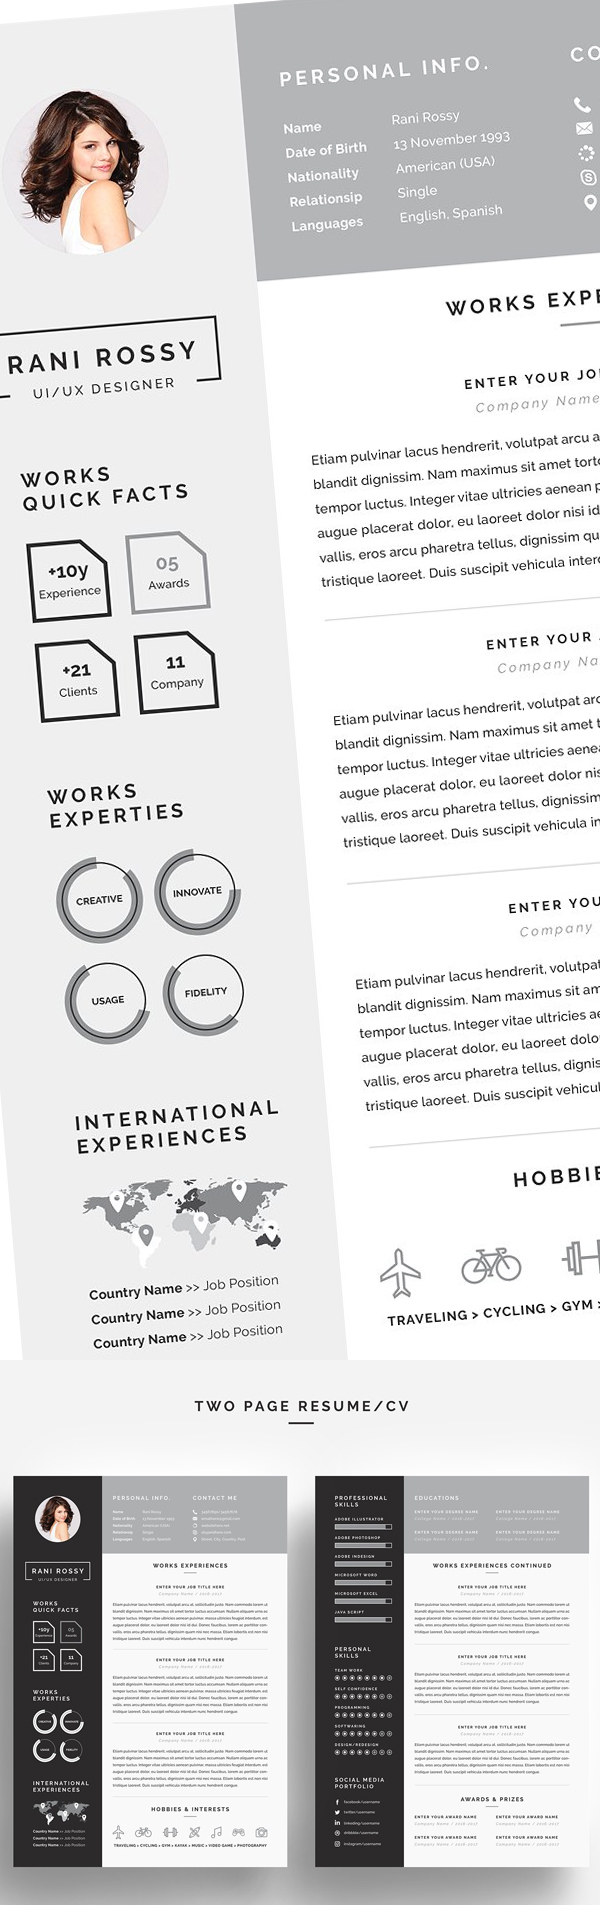 Word Infographic CV